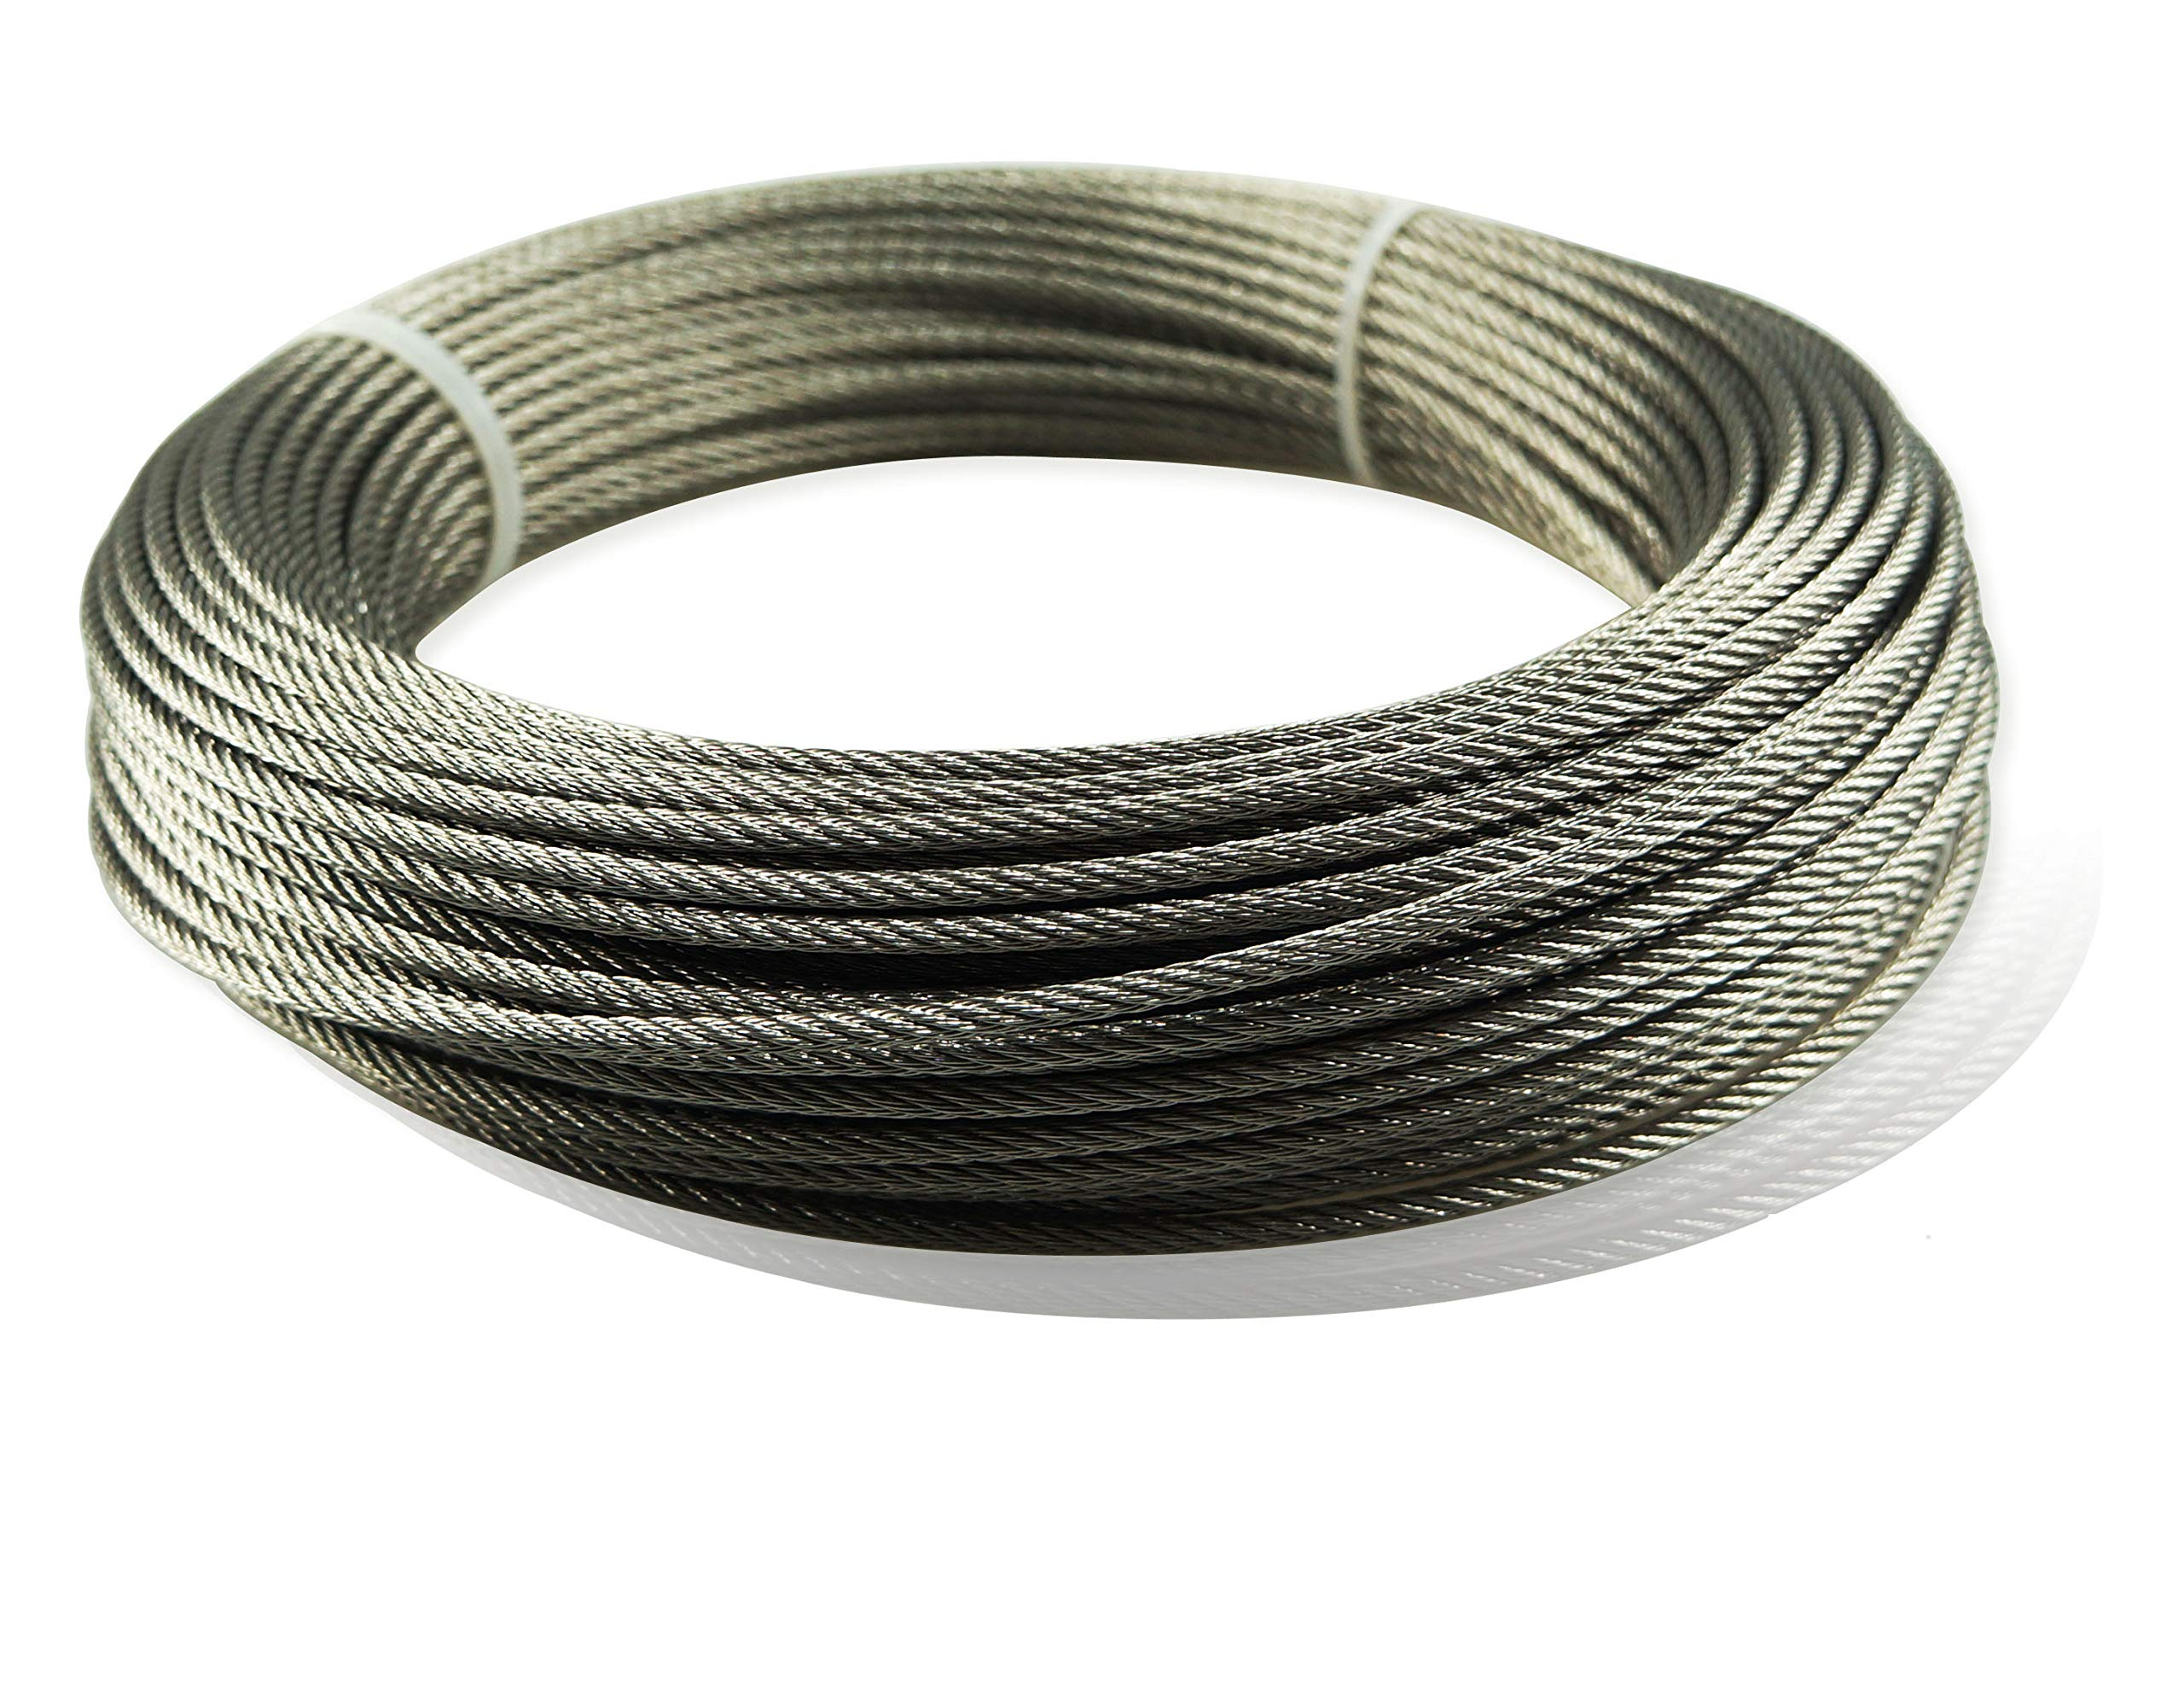 Muzata Stainless Aircraft Steel Wire Rope Cable for Railing,Decking, DIY Balustrade, 1/8Inch,7x7,165Feet WR01,Series WP1 by Muzata